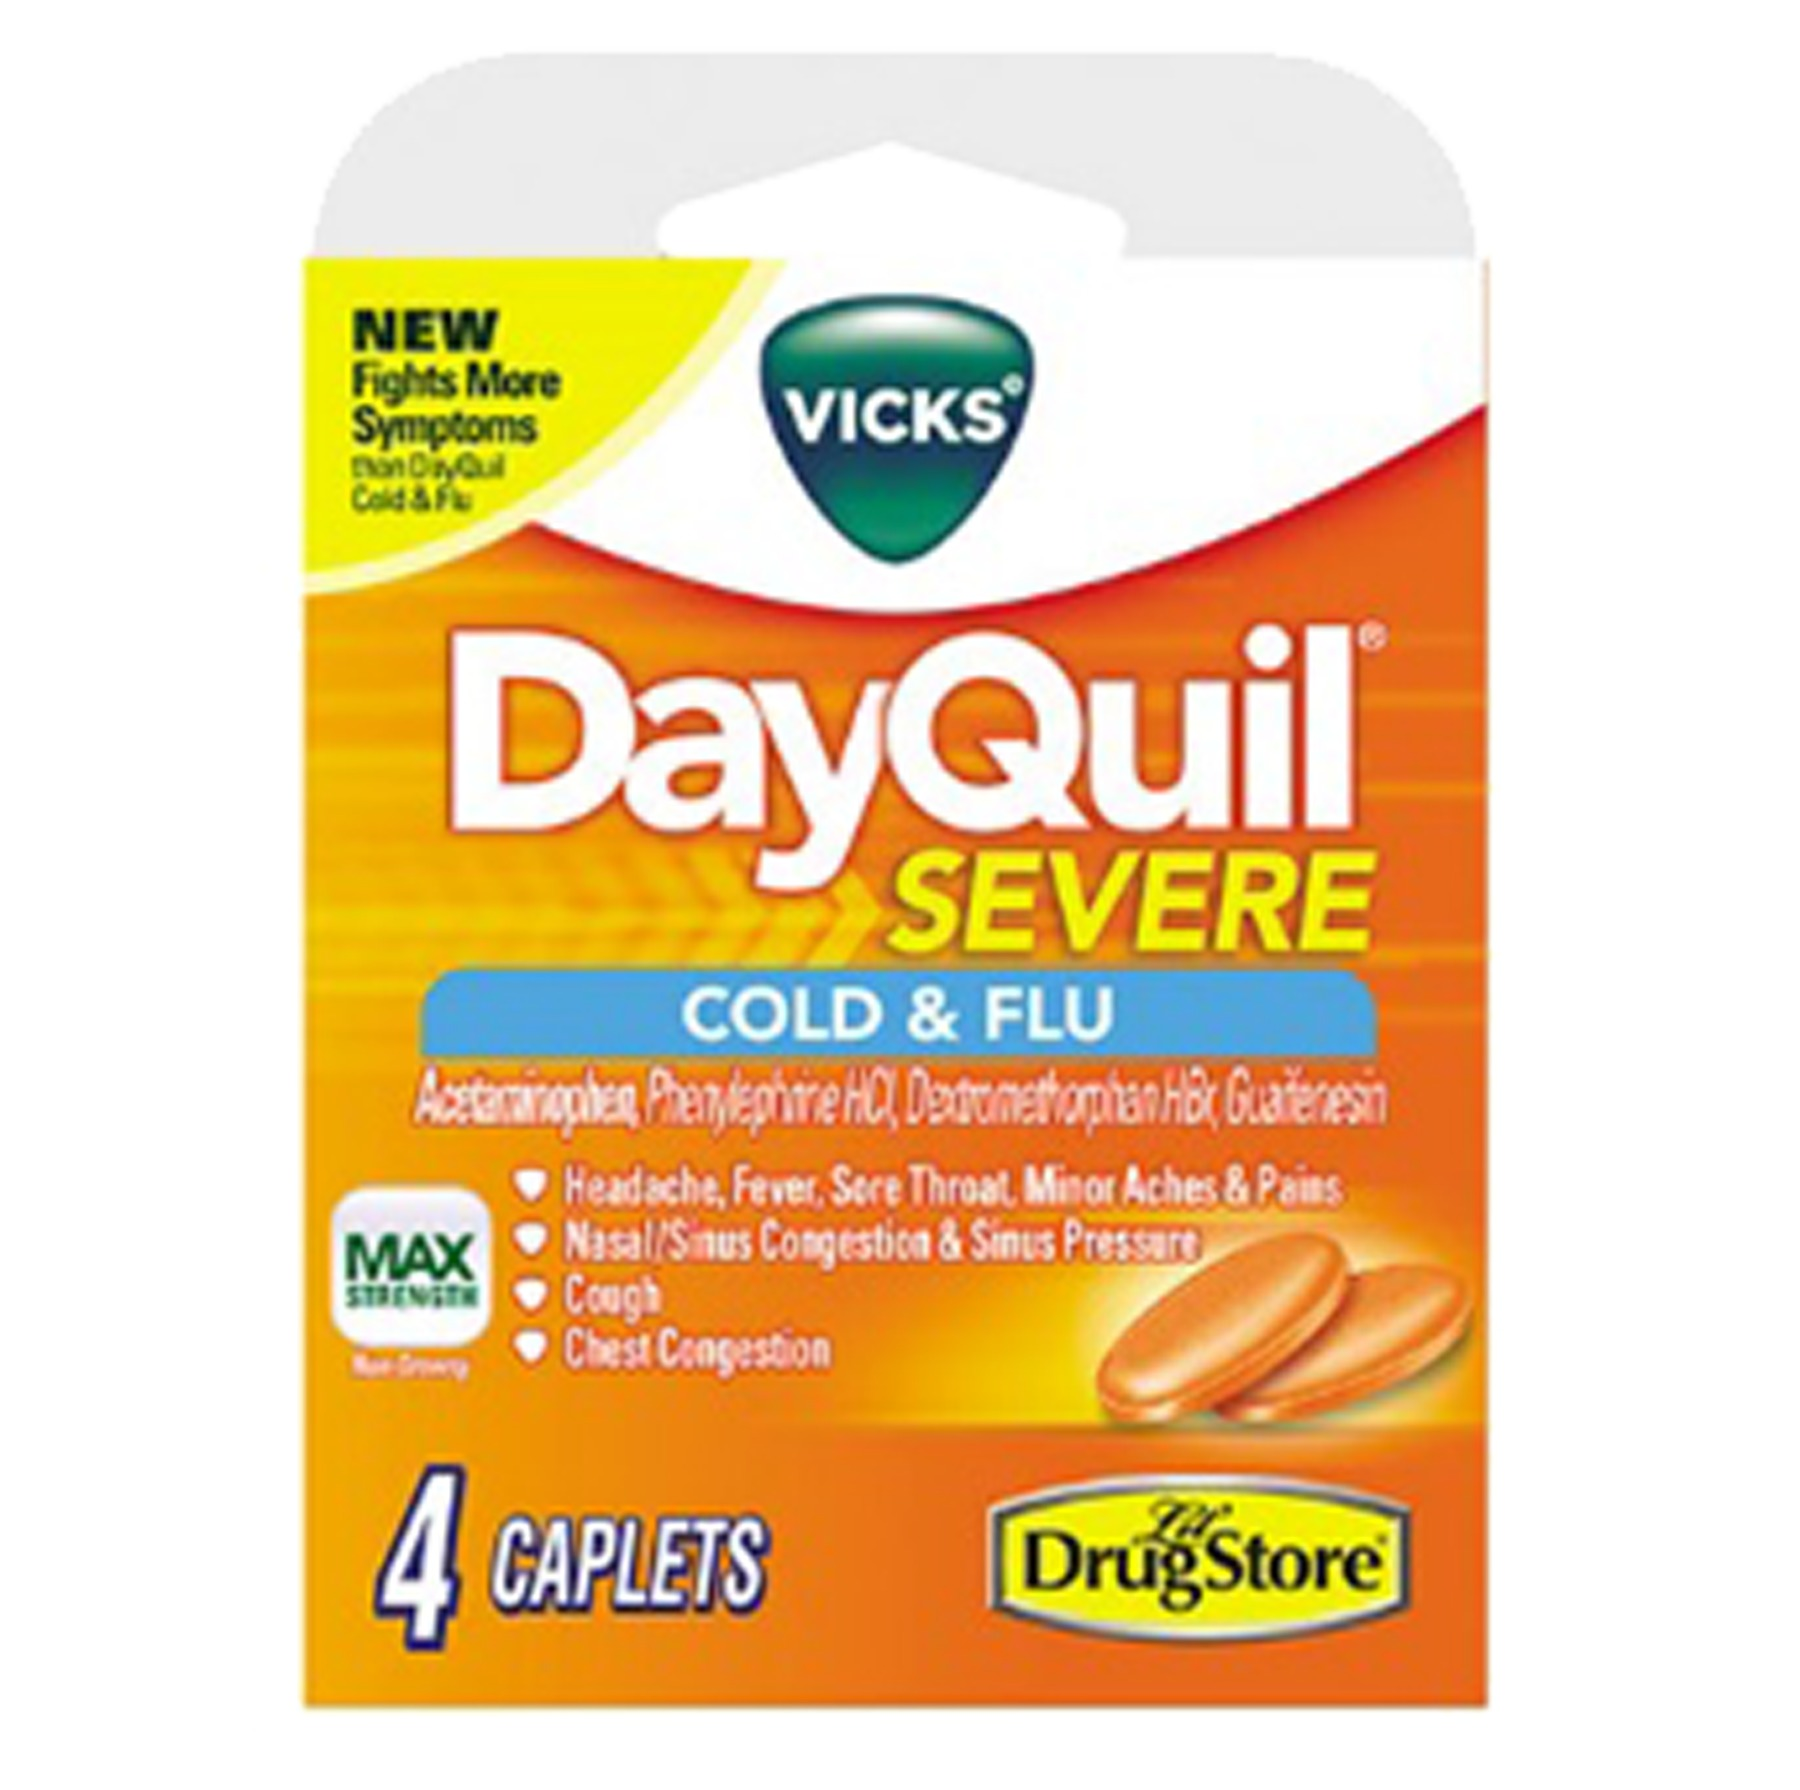 Dayquil 1770 Severe 4Ct